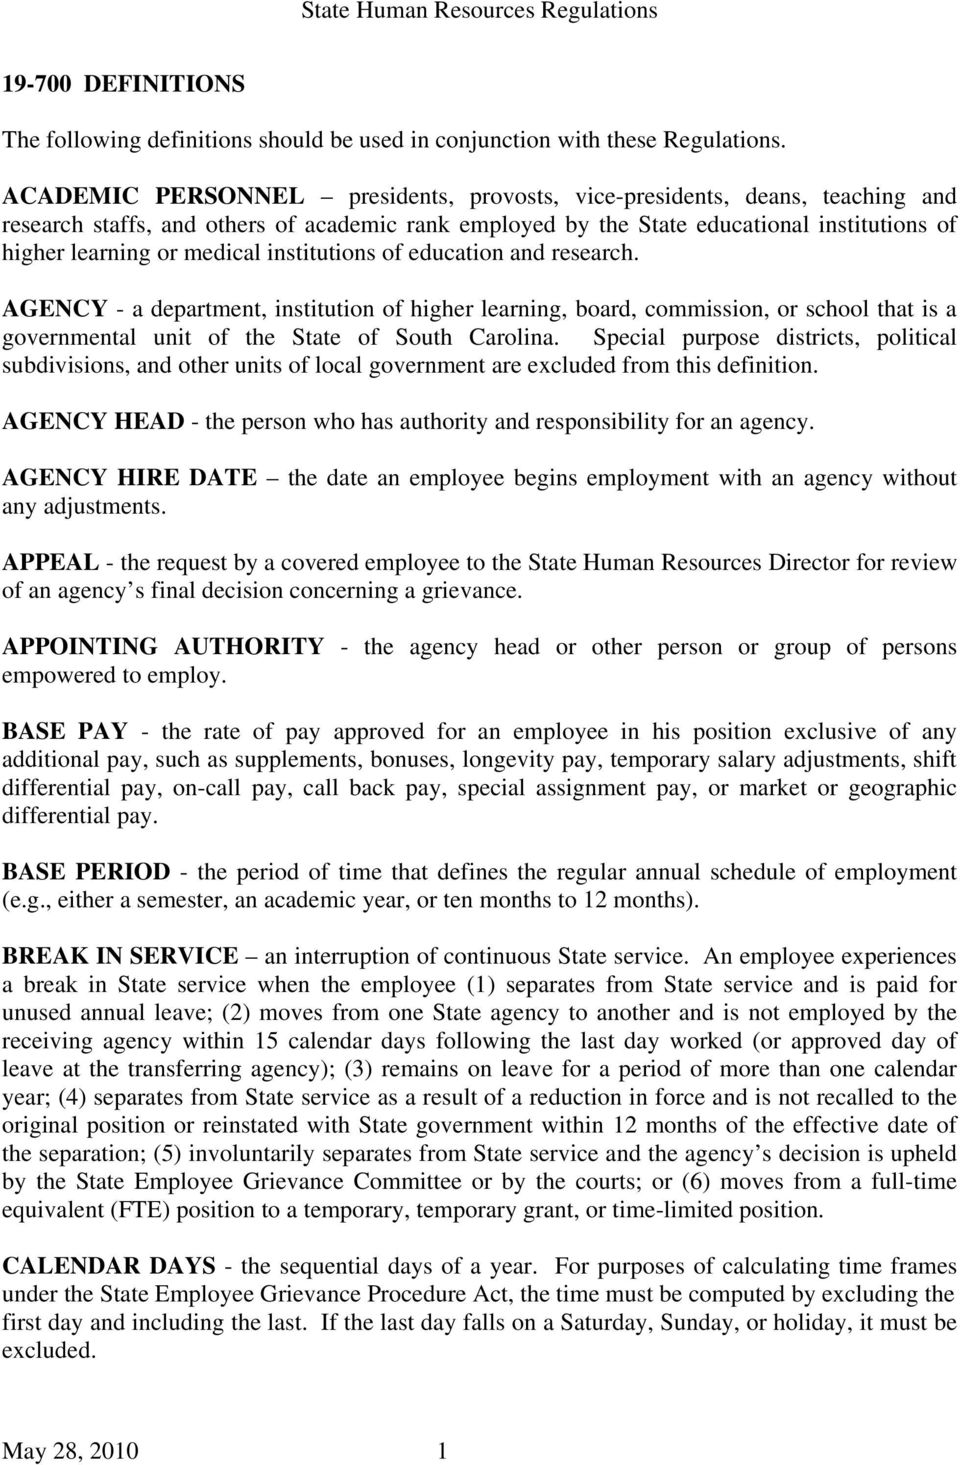 State Human Resources Regulations  The following definitions